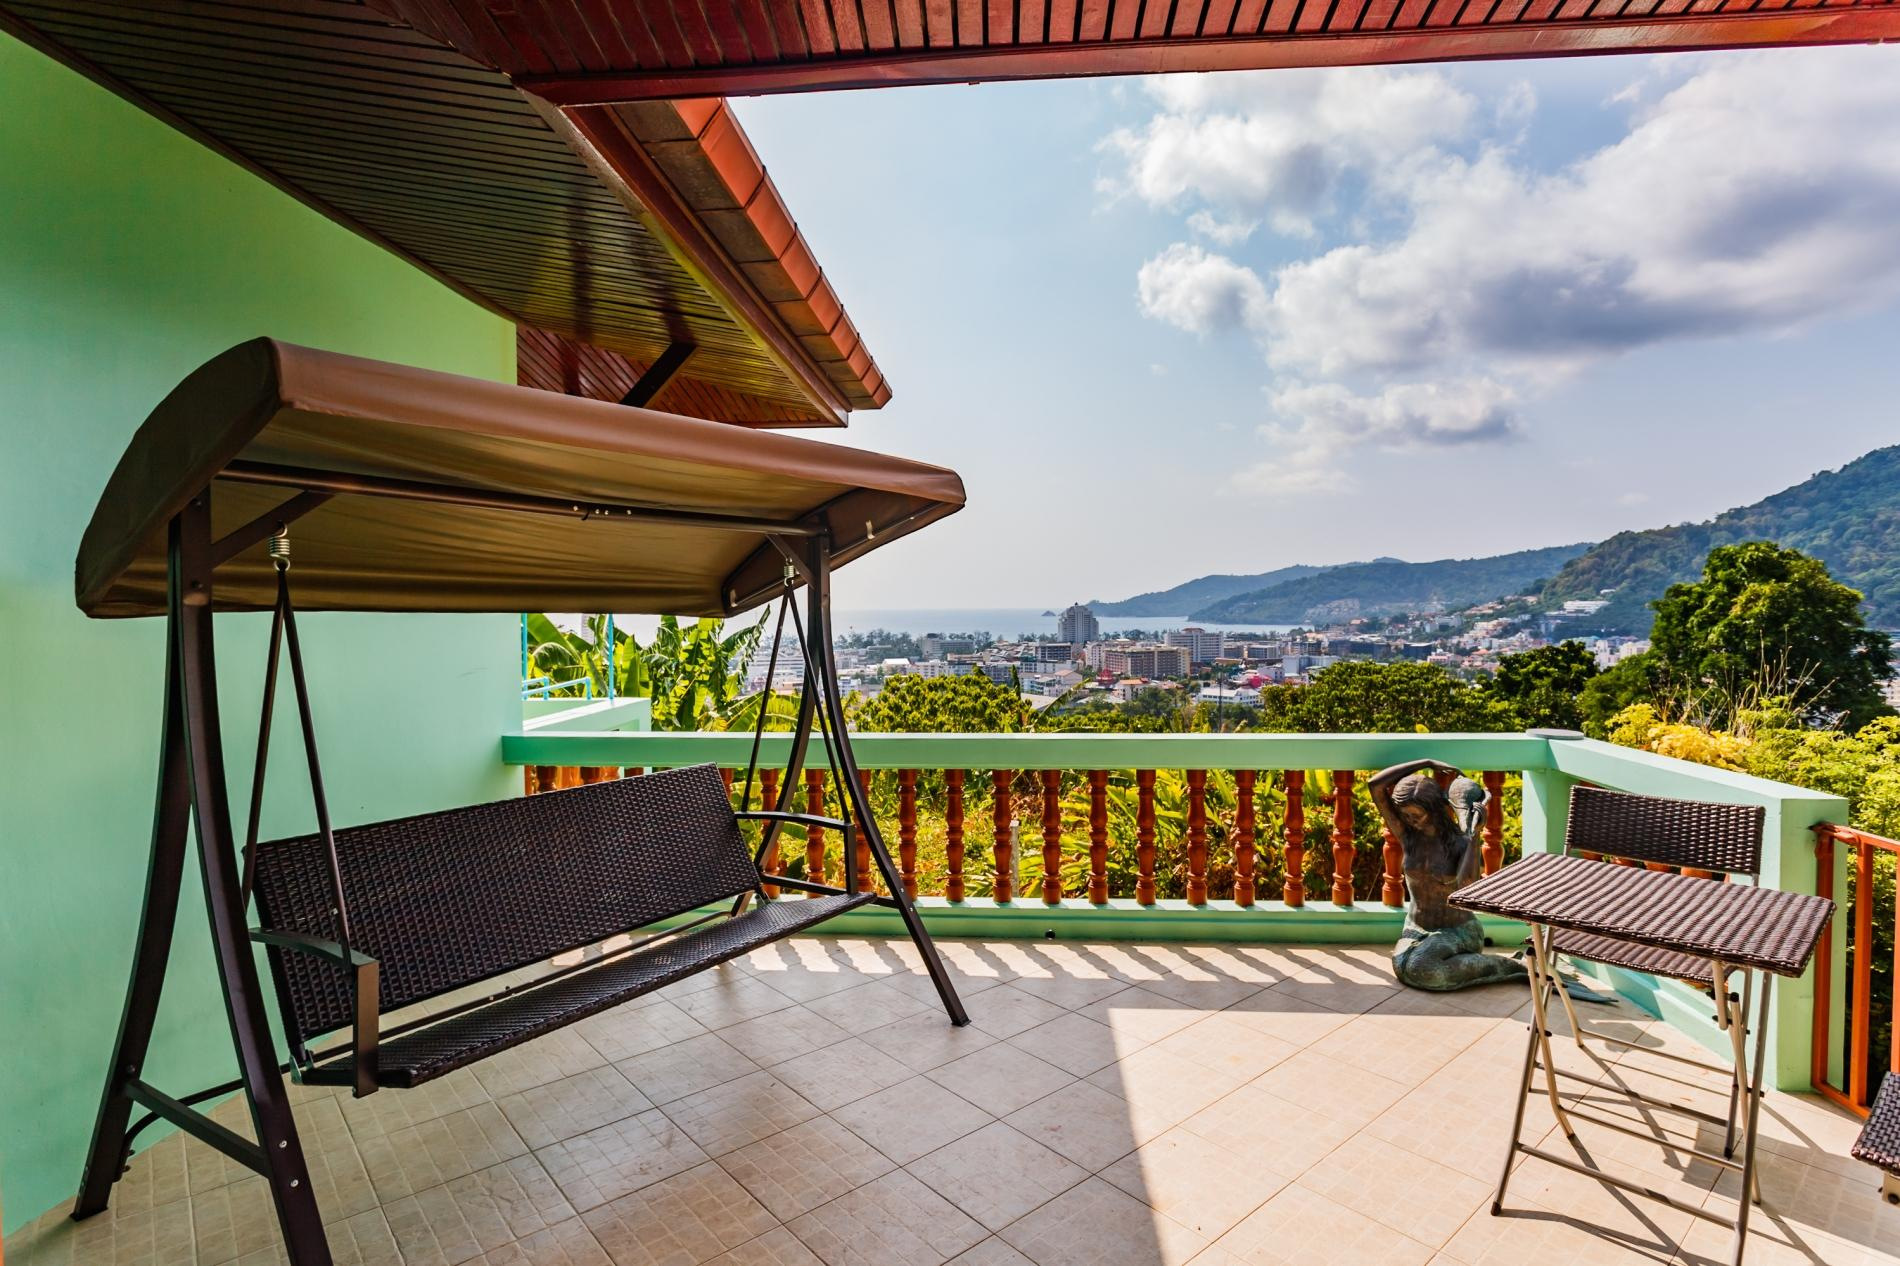 Vista Villa 2 - Sea view Patong house for 4 guests in quiet neighbourhood photo 13921736